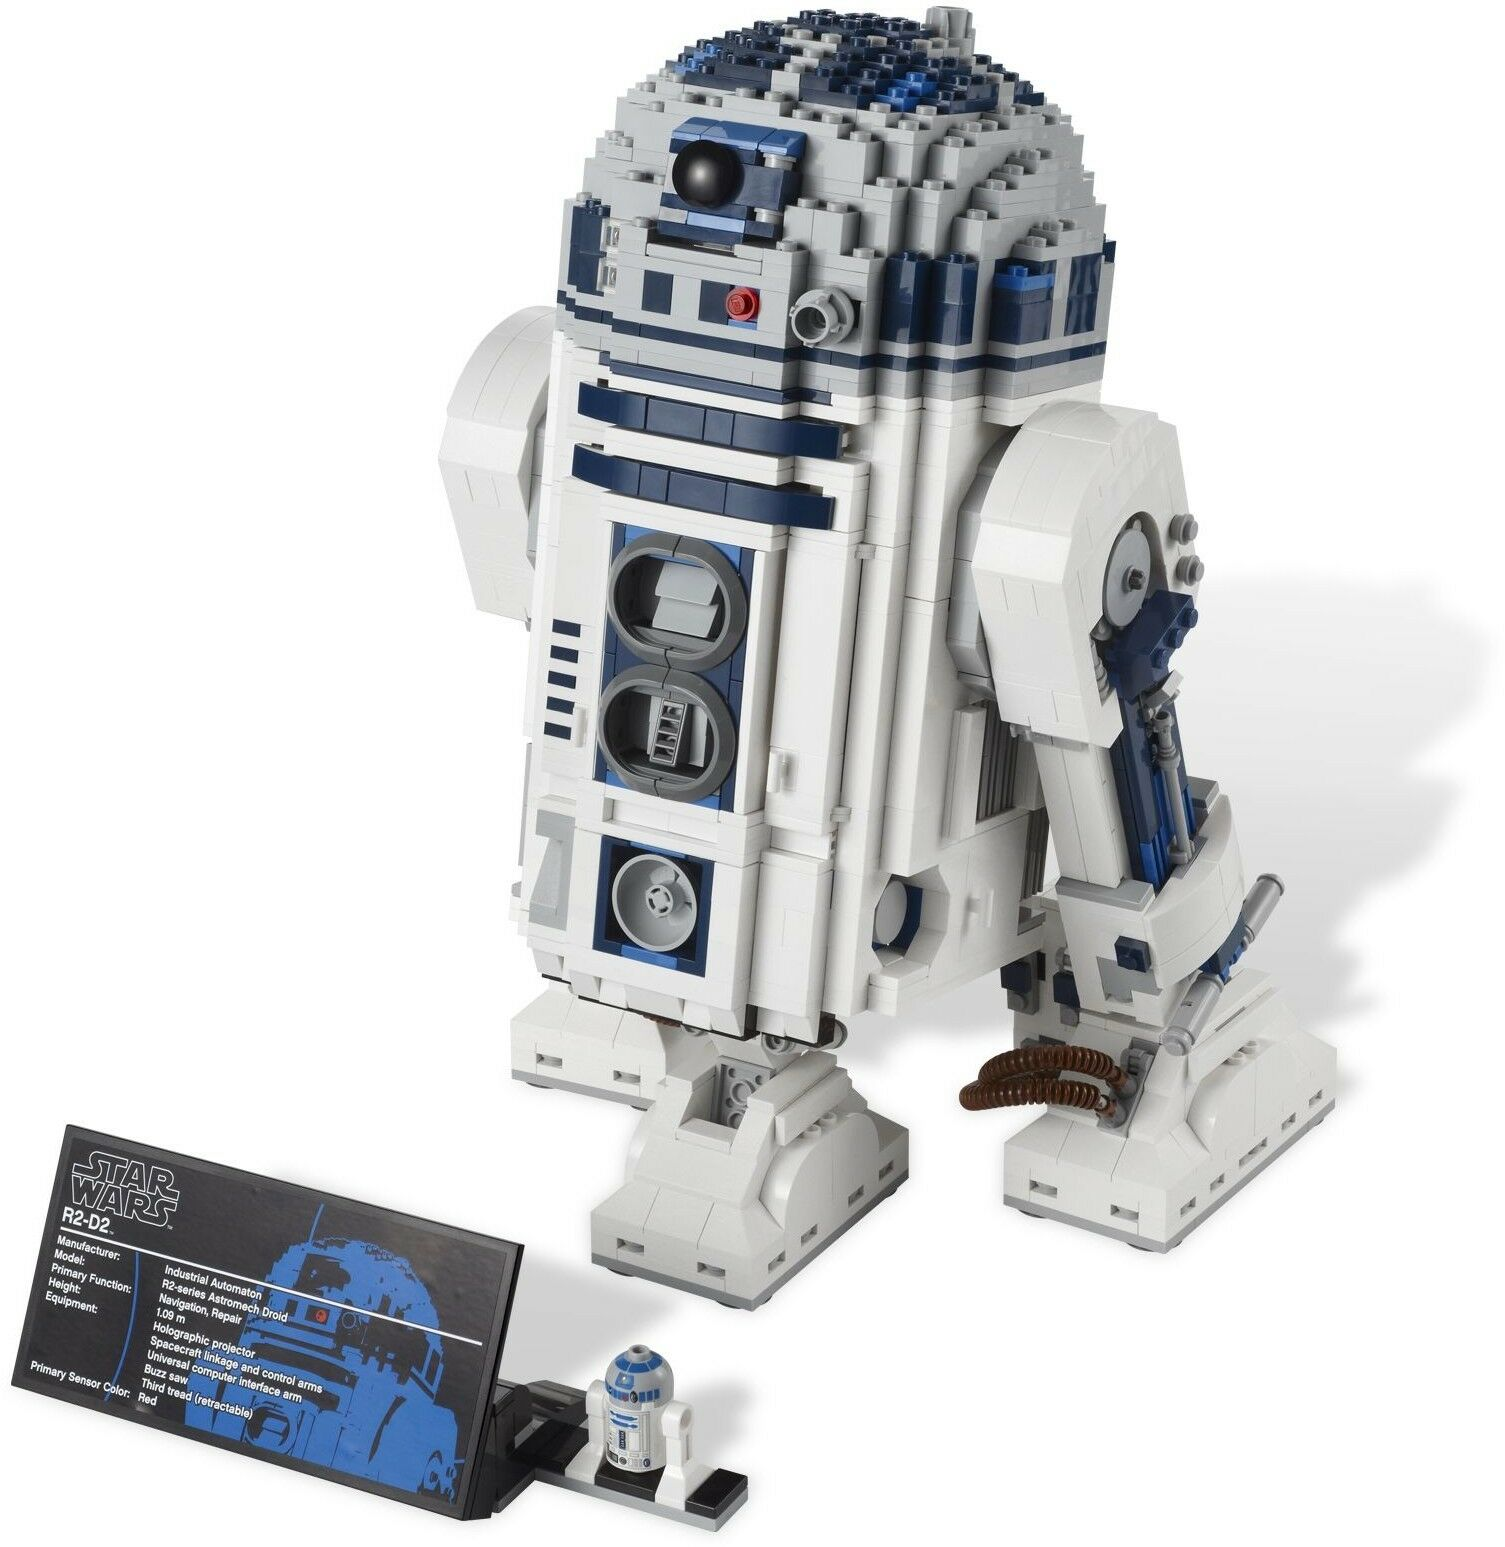 LEGO Star Wars R2-D2 UCS Ultimate Collector Series BNIB SEALED RETIROT 10225